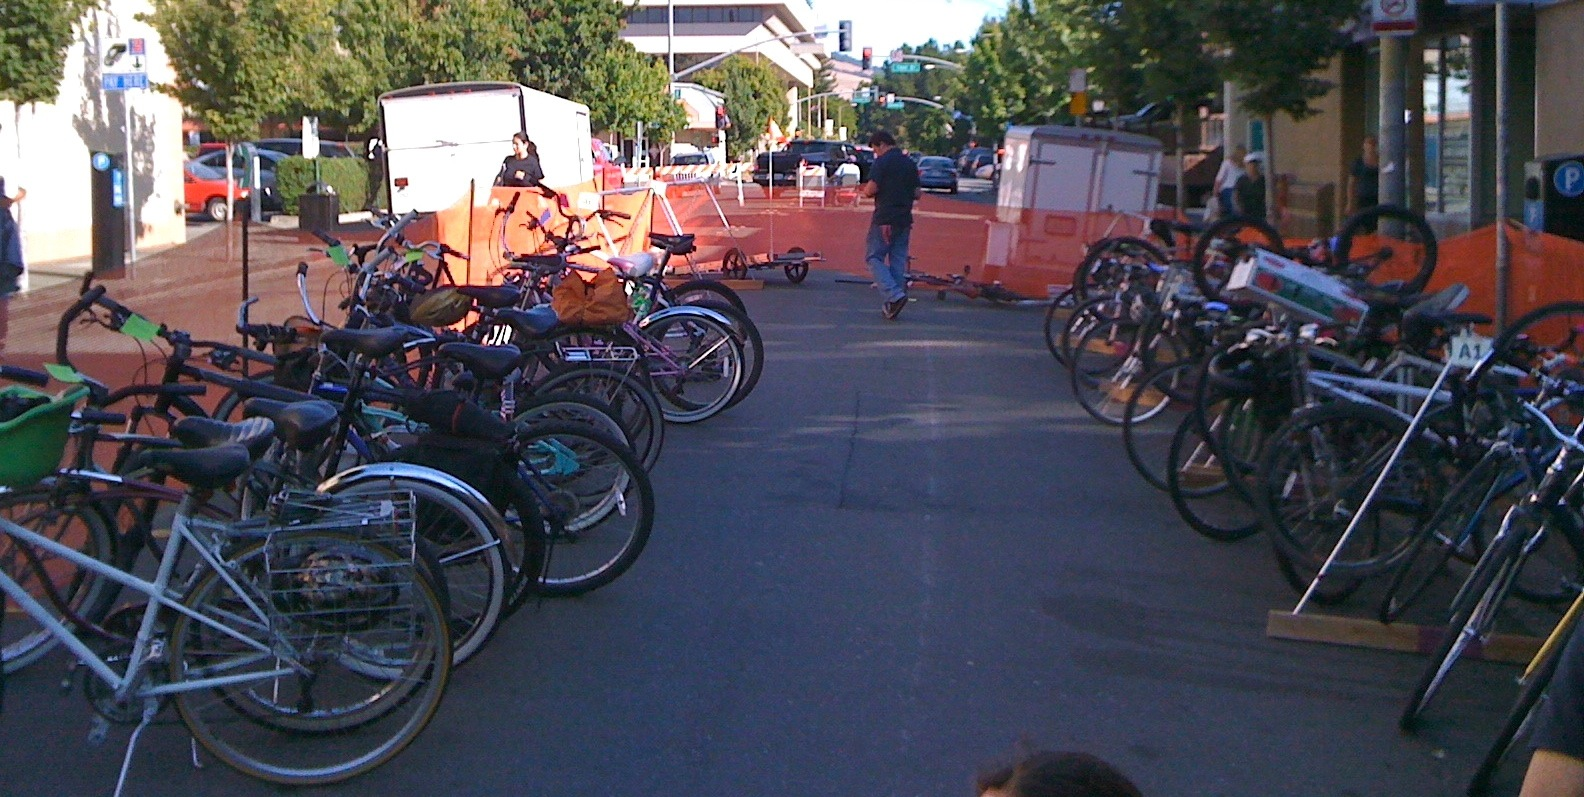 Bicycles inside orange security fencing on kickstands and racks